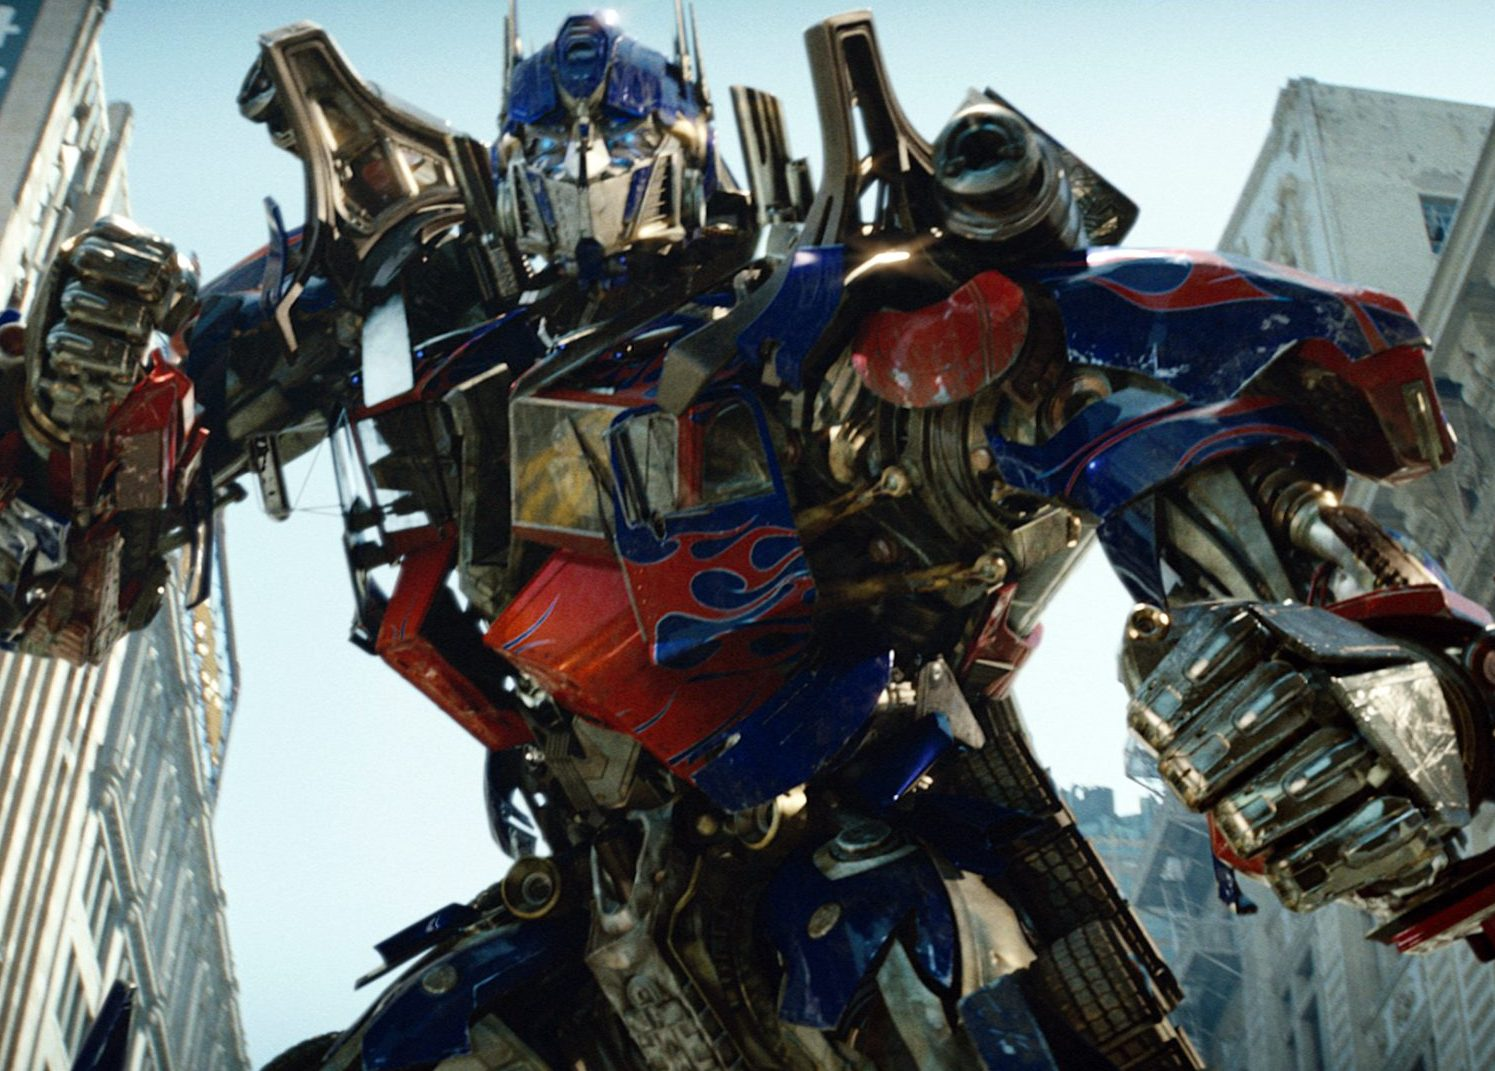 transformers 2007 hero e1620303170655 The Best (And Worst) Revivals Of 80s Movies And TV Shows